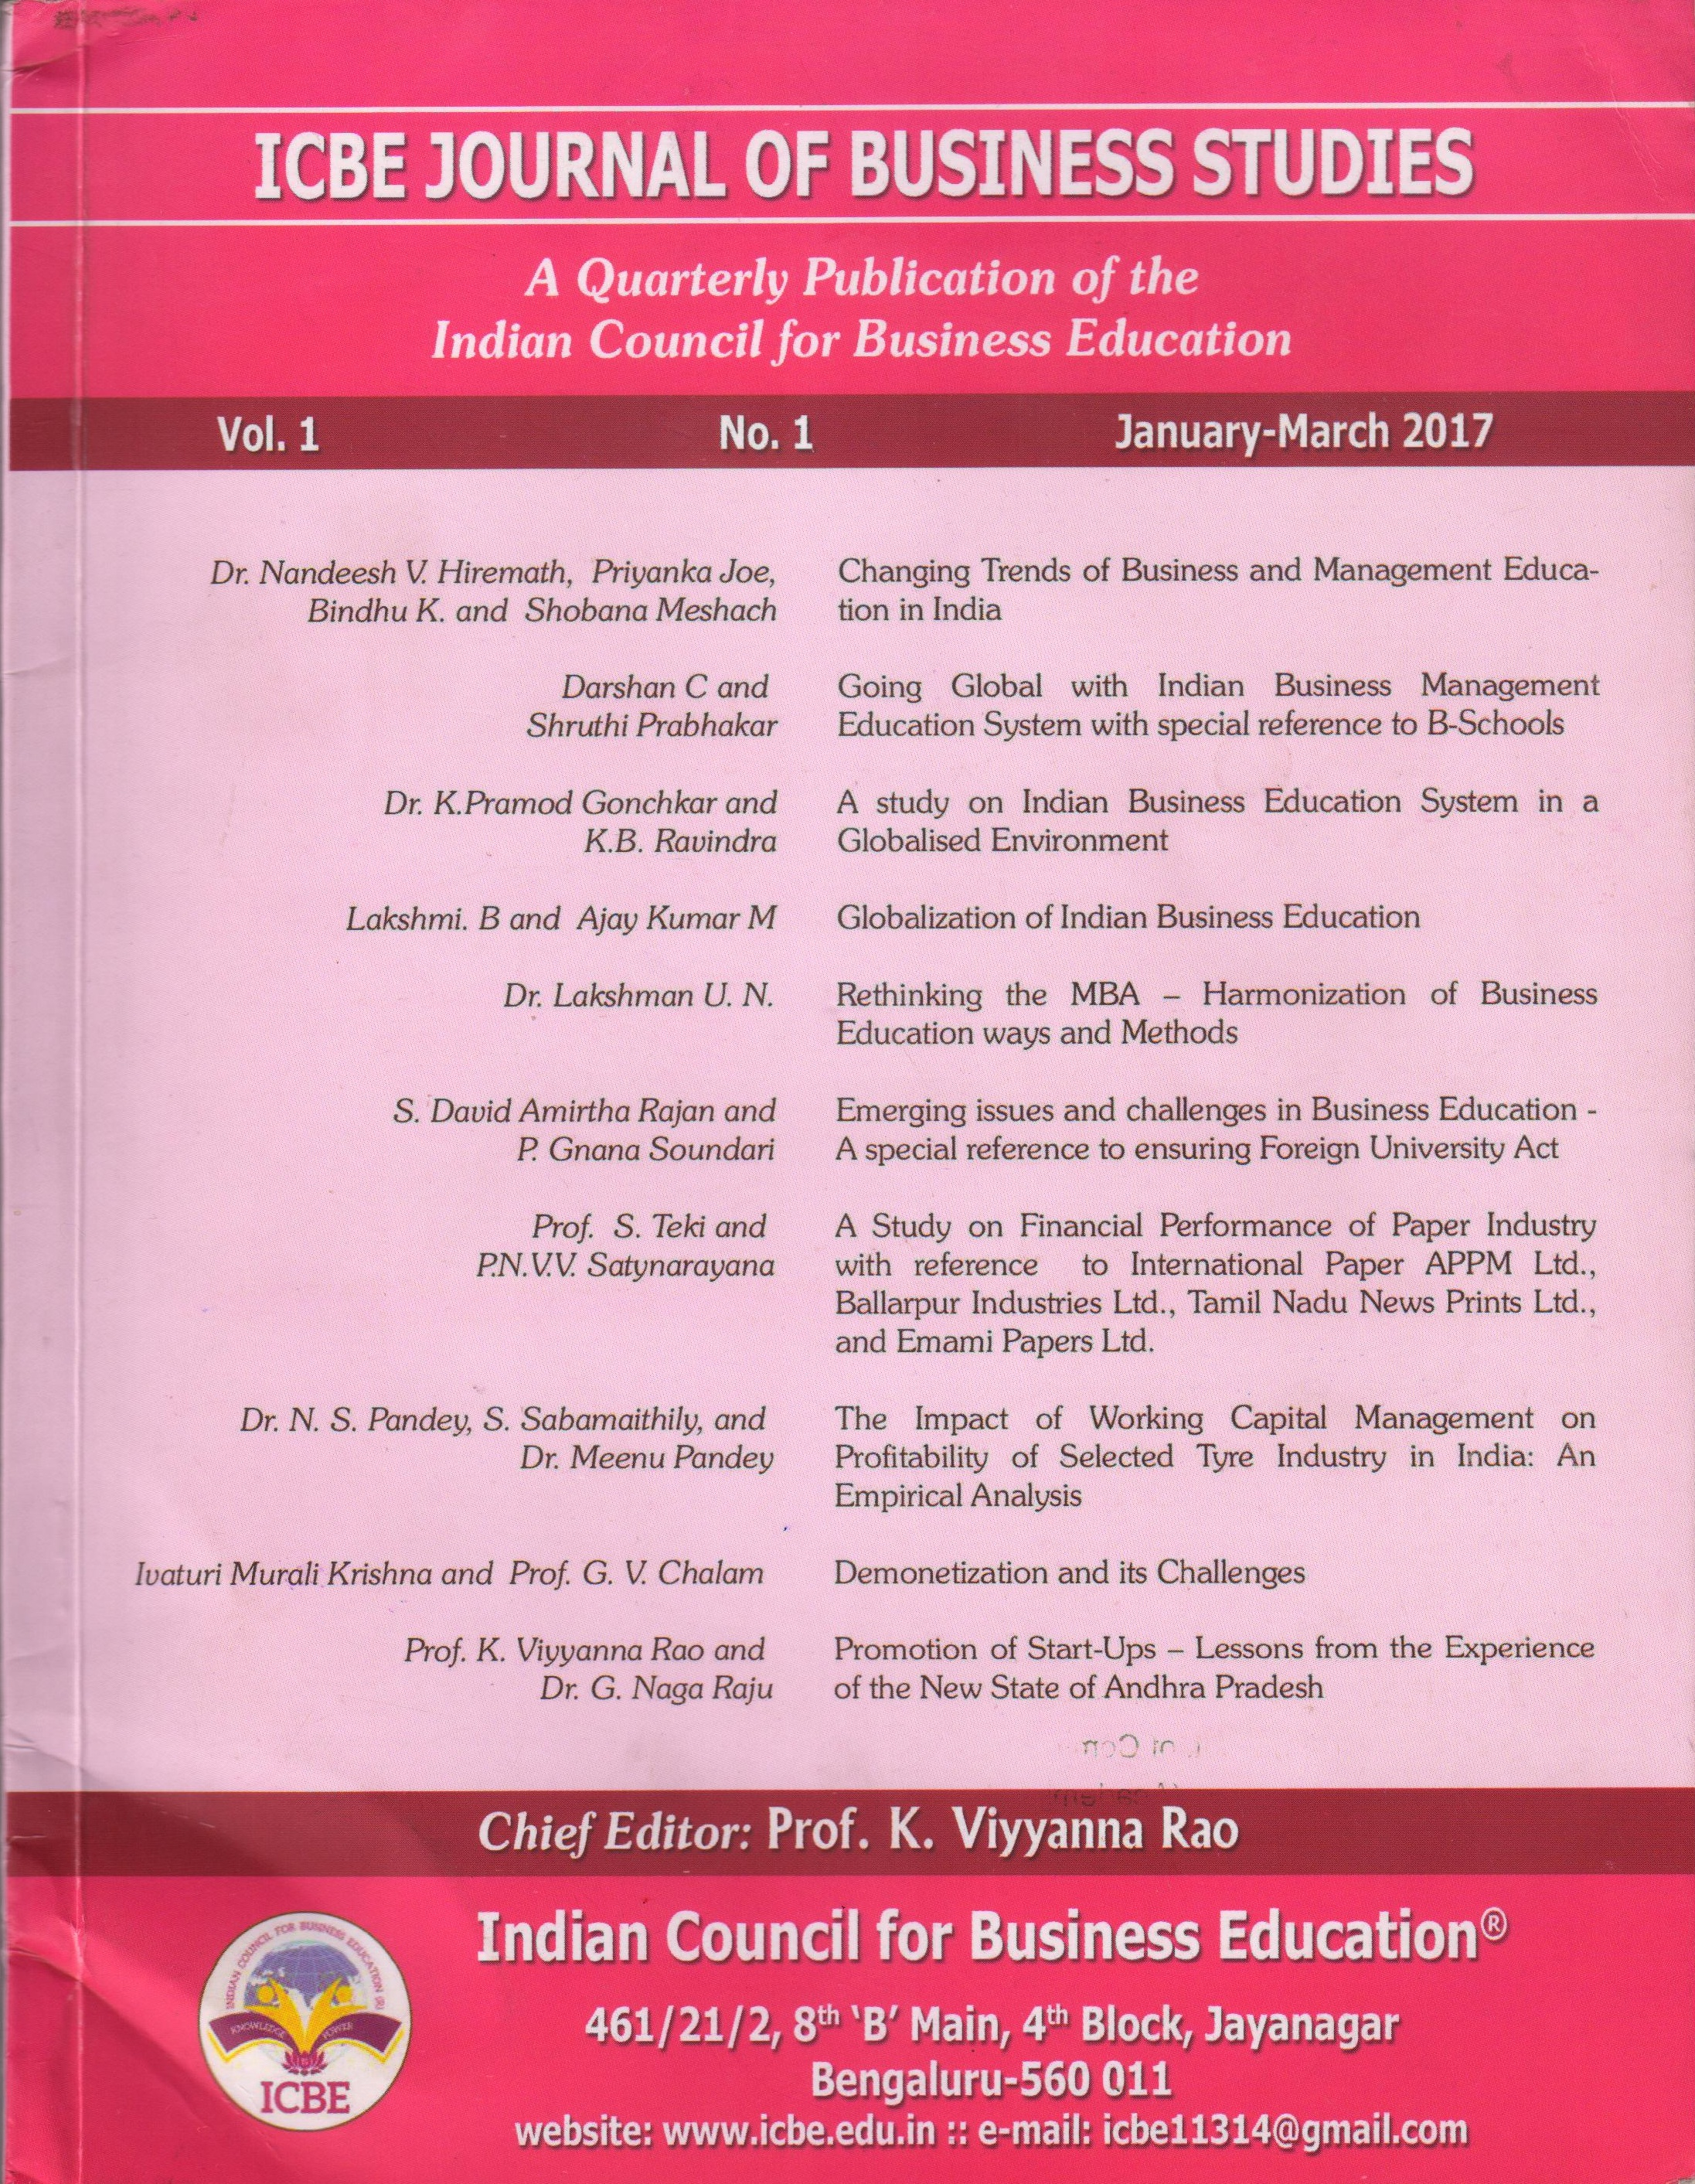 ICBE Journal Of Business Studies Vol.1 No.1 January-March 2017